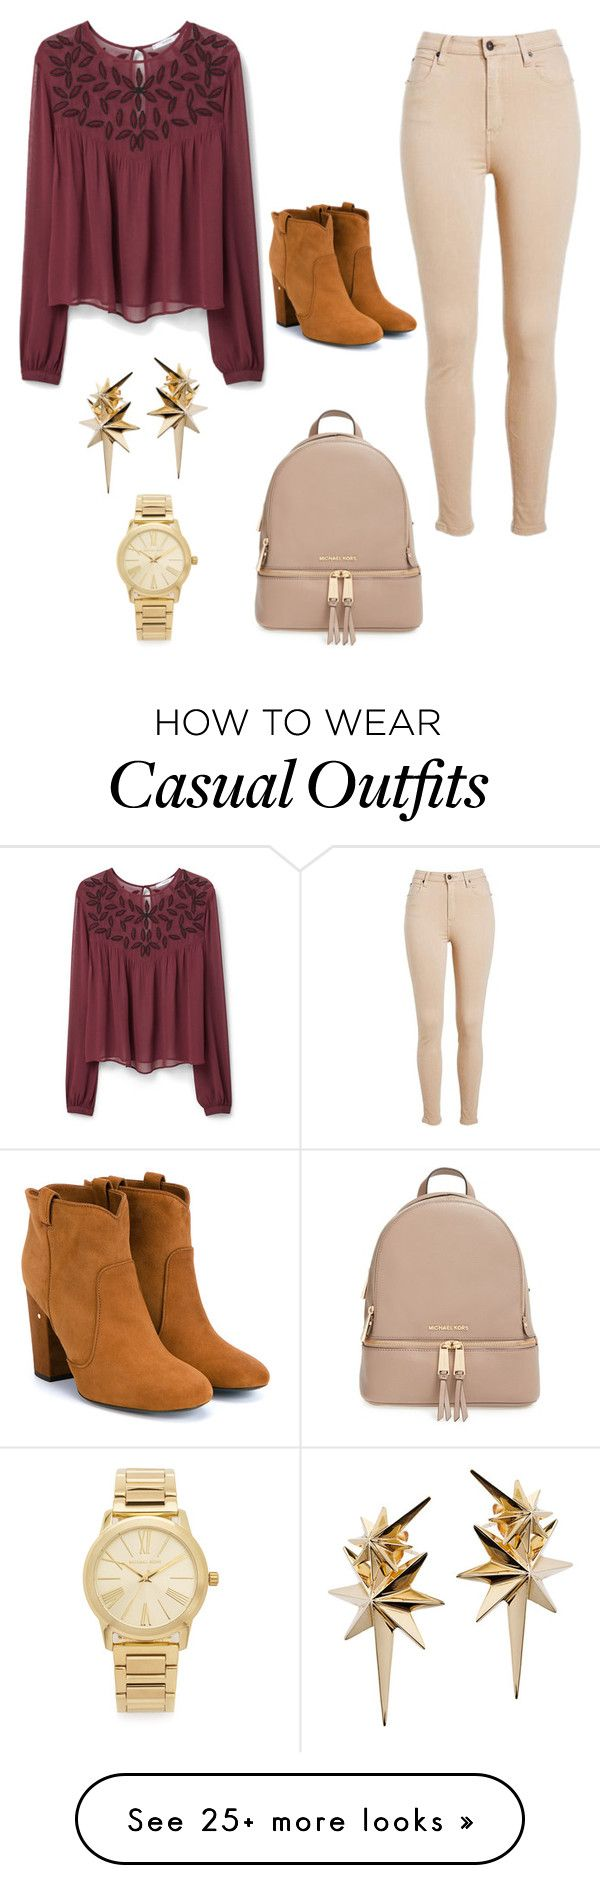 """""""Casual School Outfit"""" by maytte-carrera on Polyvore featuring MANGO, MICHAEL Michael Kors, Laurence Dacade, Ludevine, Michael Kors, women's clothing, women, female, woman and misses"""